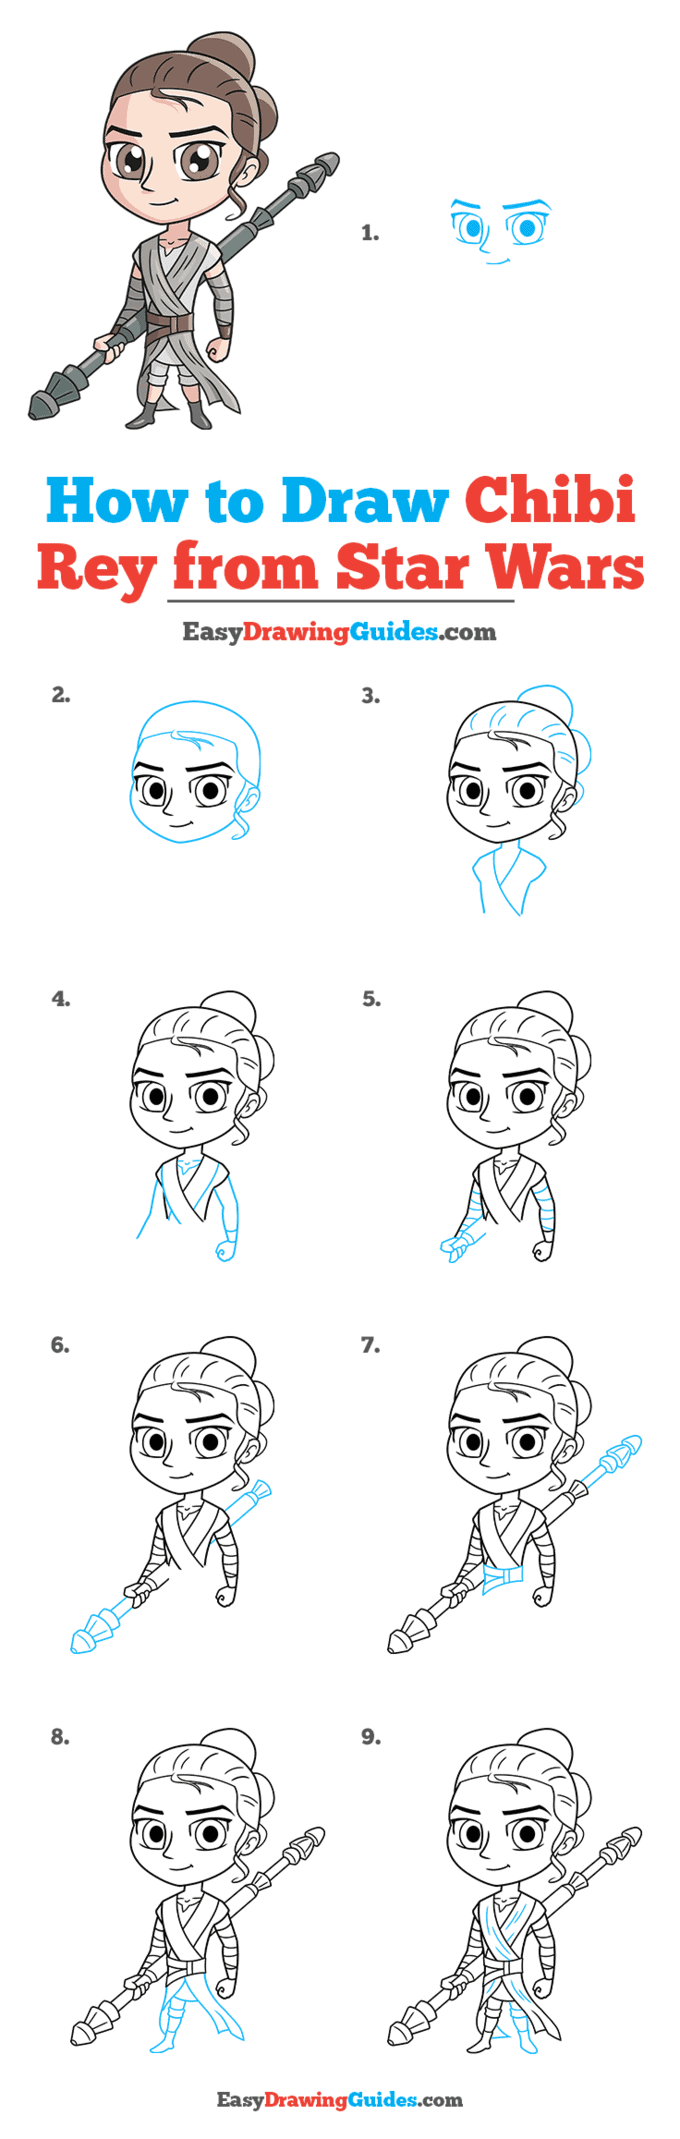 how to draw chibi rey from star wars step by step tutorial image